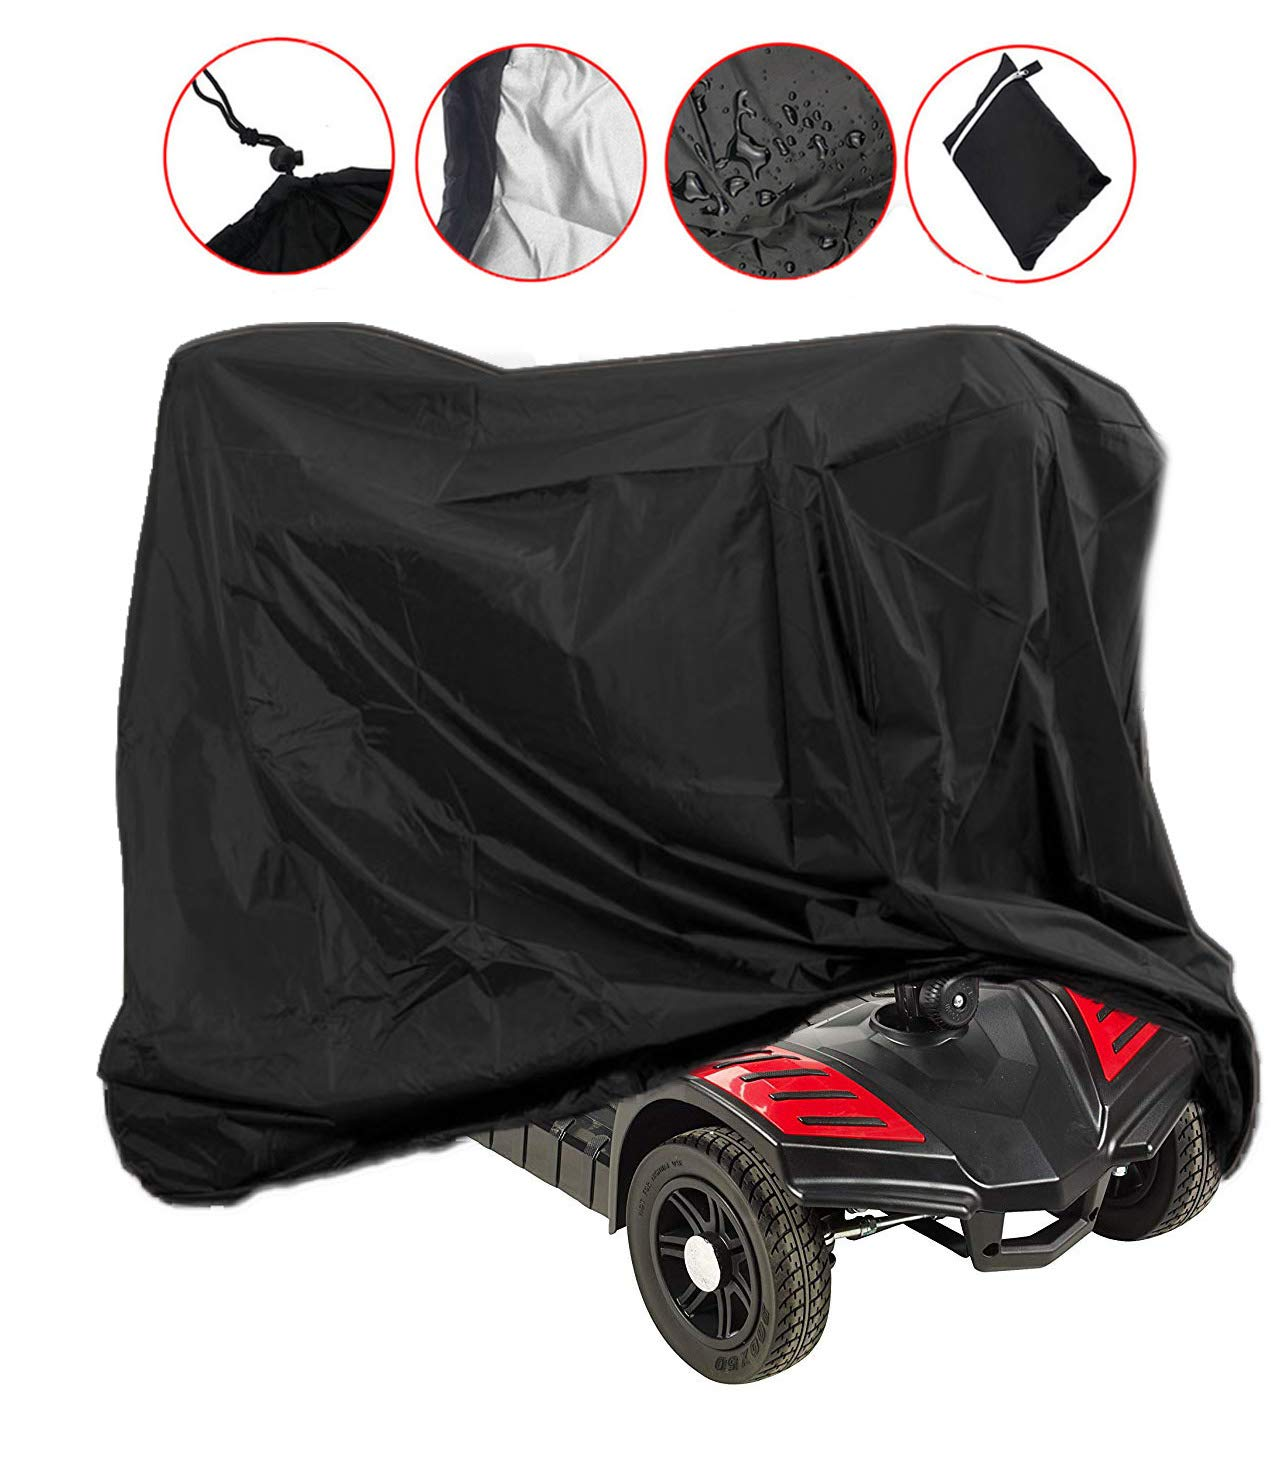 Mobility Scooter Storage Cover, Wheelchair Storage Cover Waterproof Lightweight Rain Protector from Dust Dirt Snow Rain Sun Rays - 55 x 26 x 36 inch (L x W x H) by Lmeison